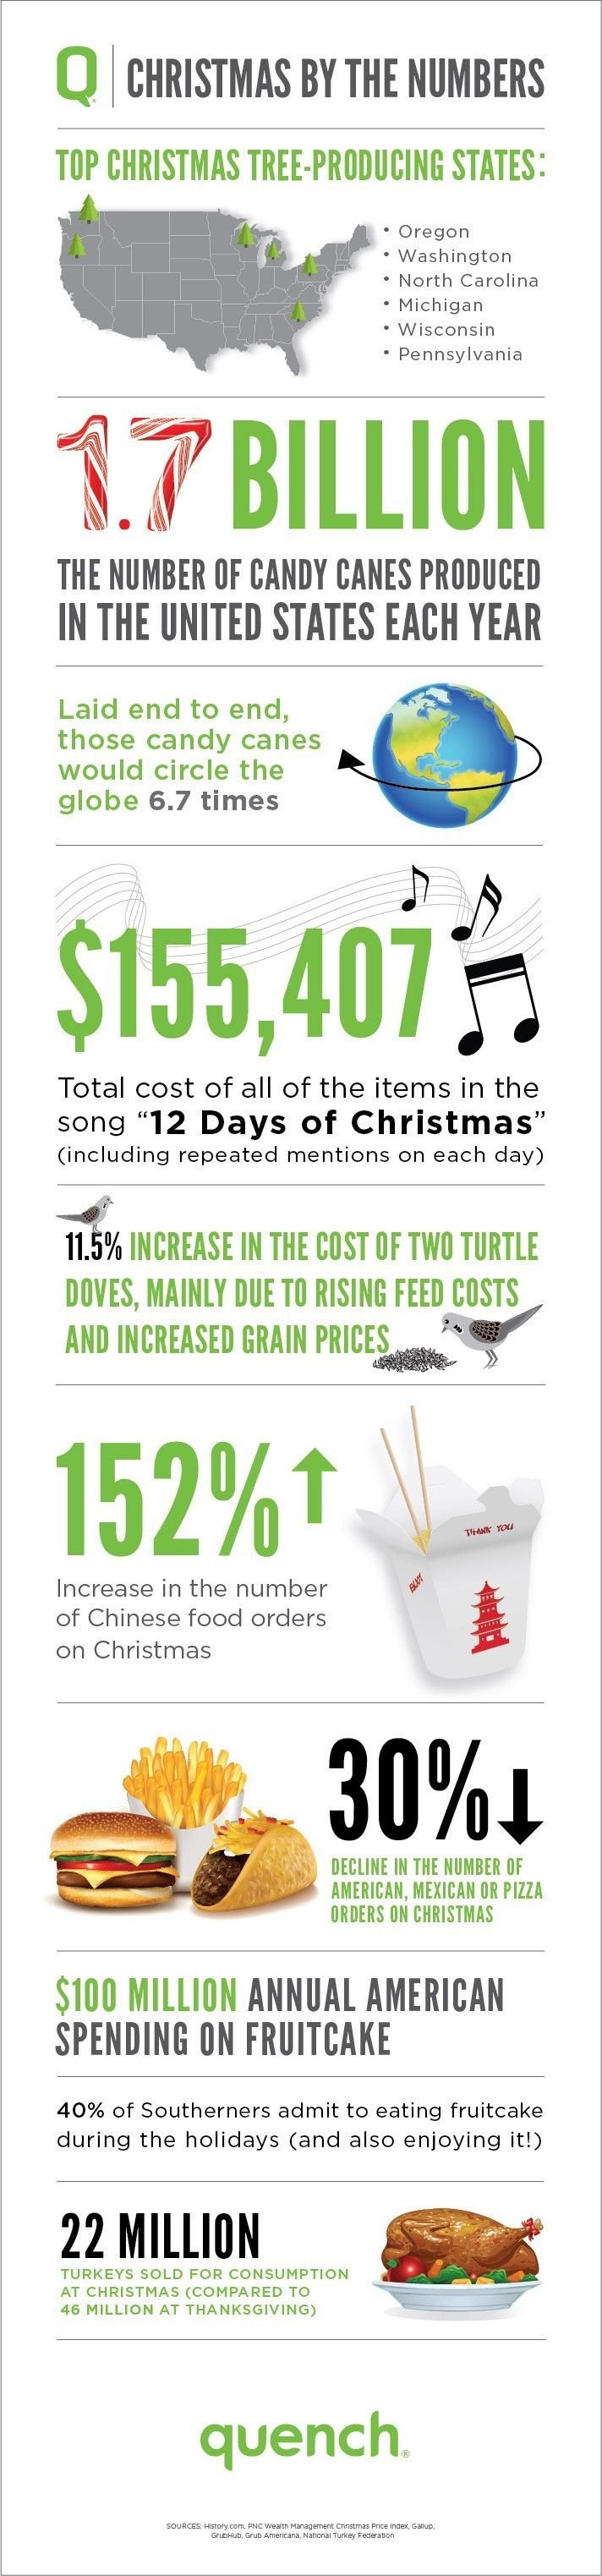 Quench-0002-Christmas-blog-Infographic-F